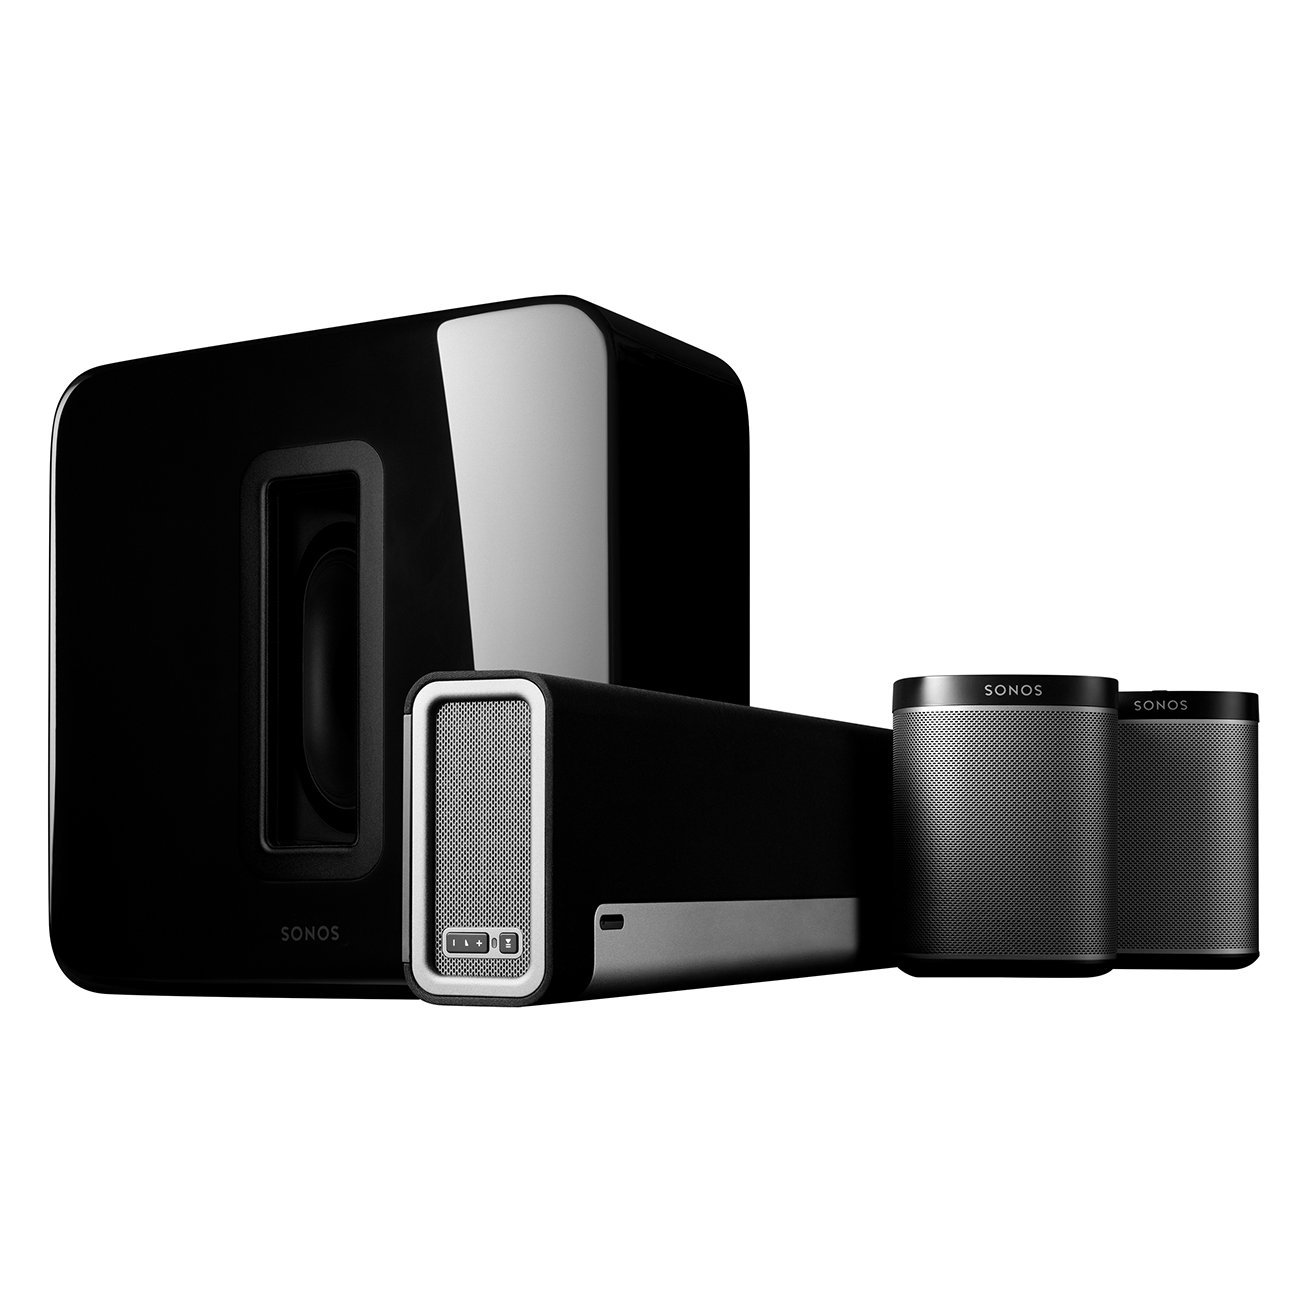 hight resolution of sonos 5 1 home theater system playbar sub play 1 wireless rears combination